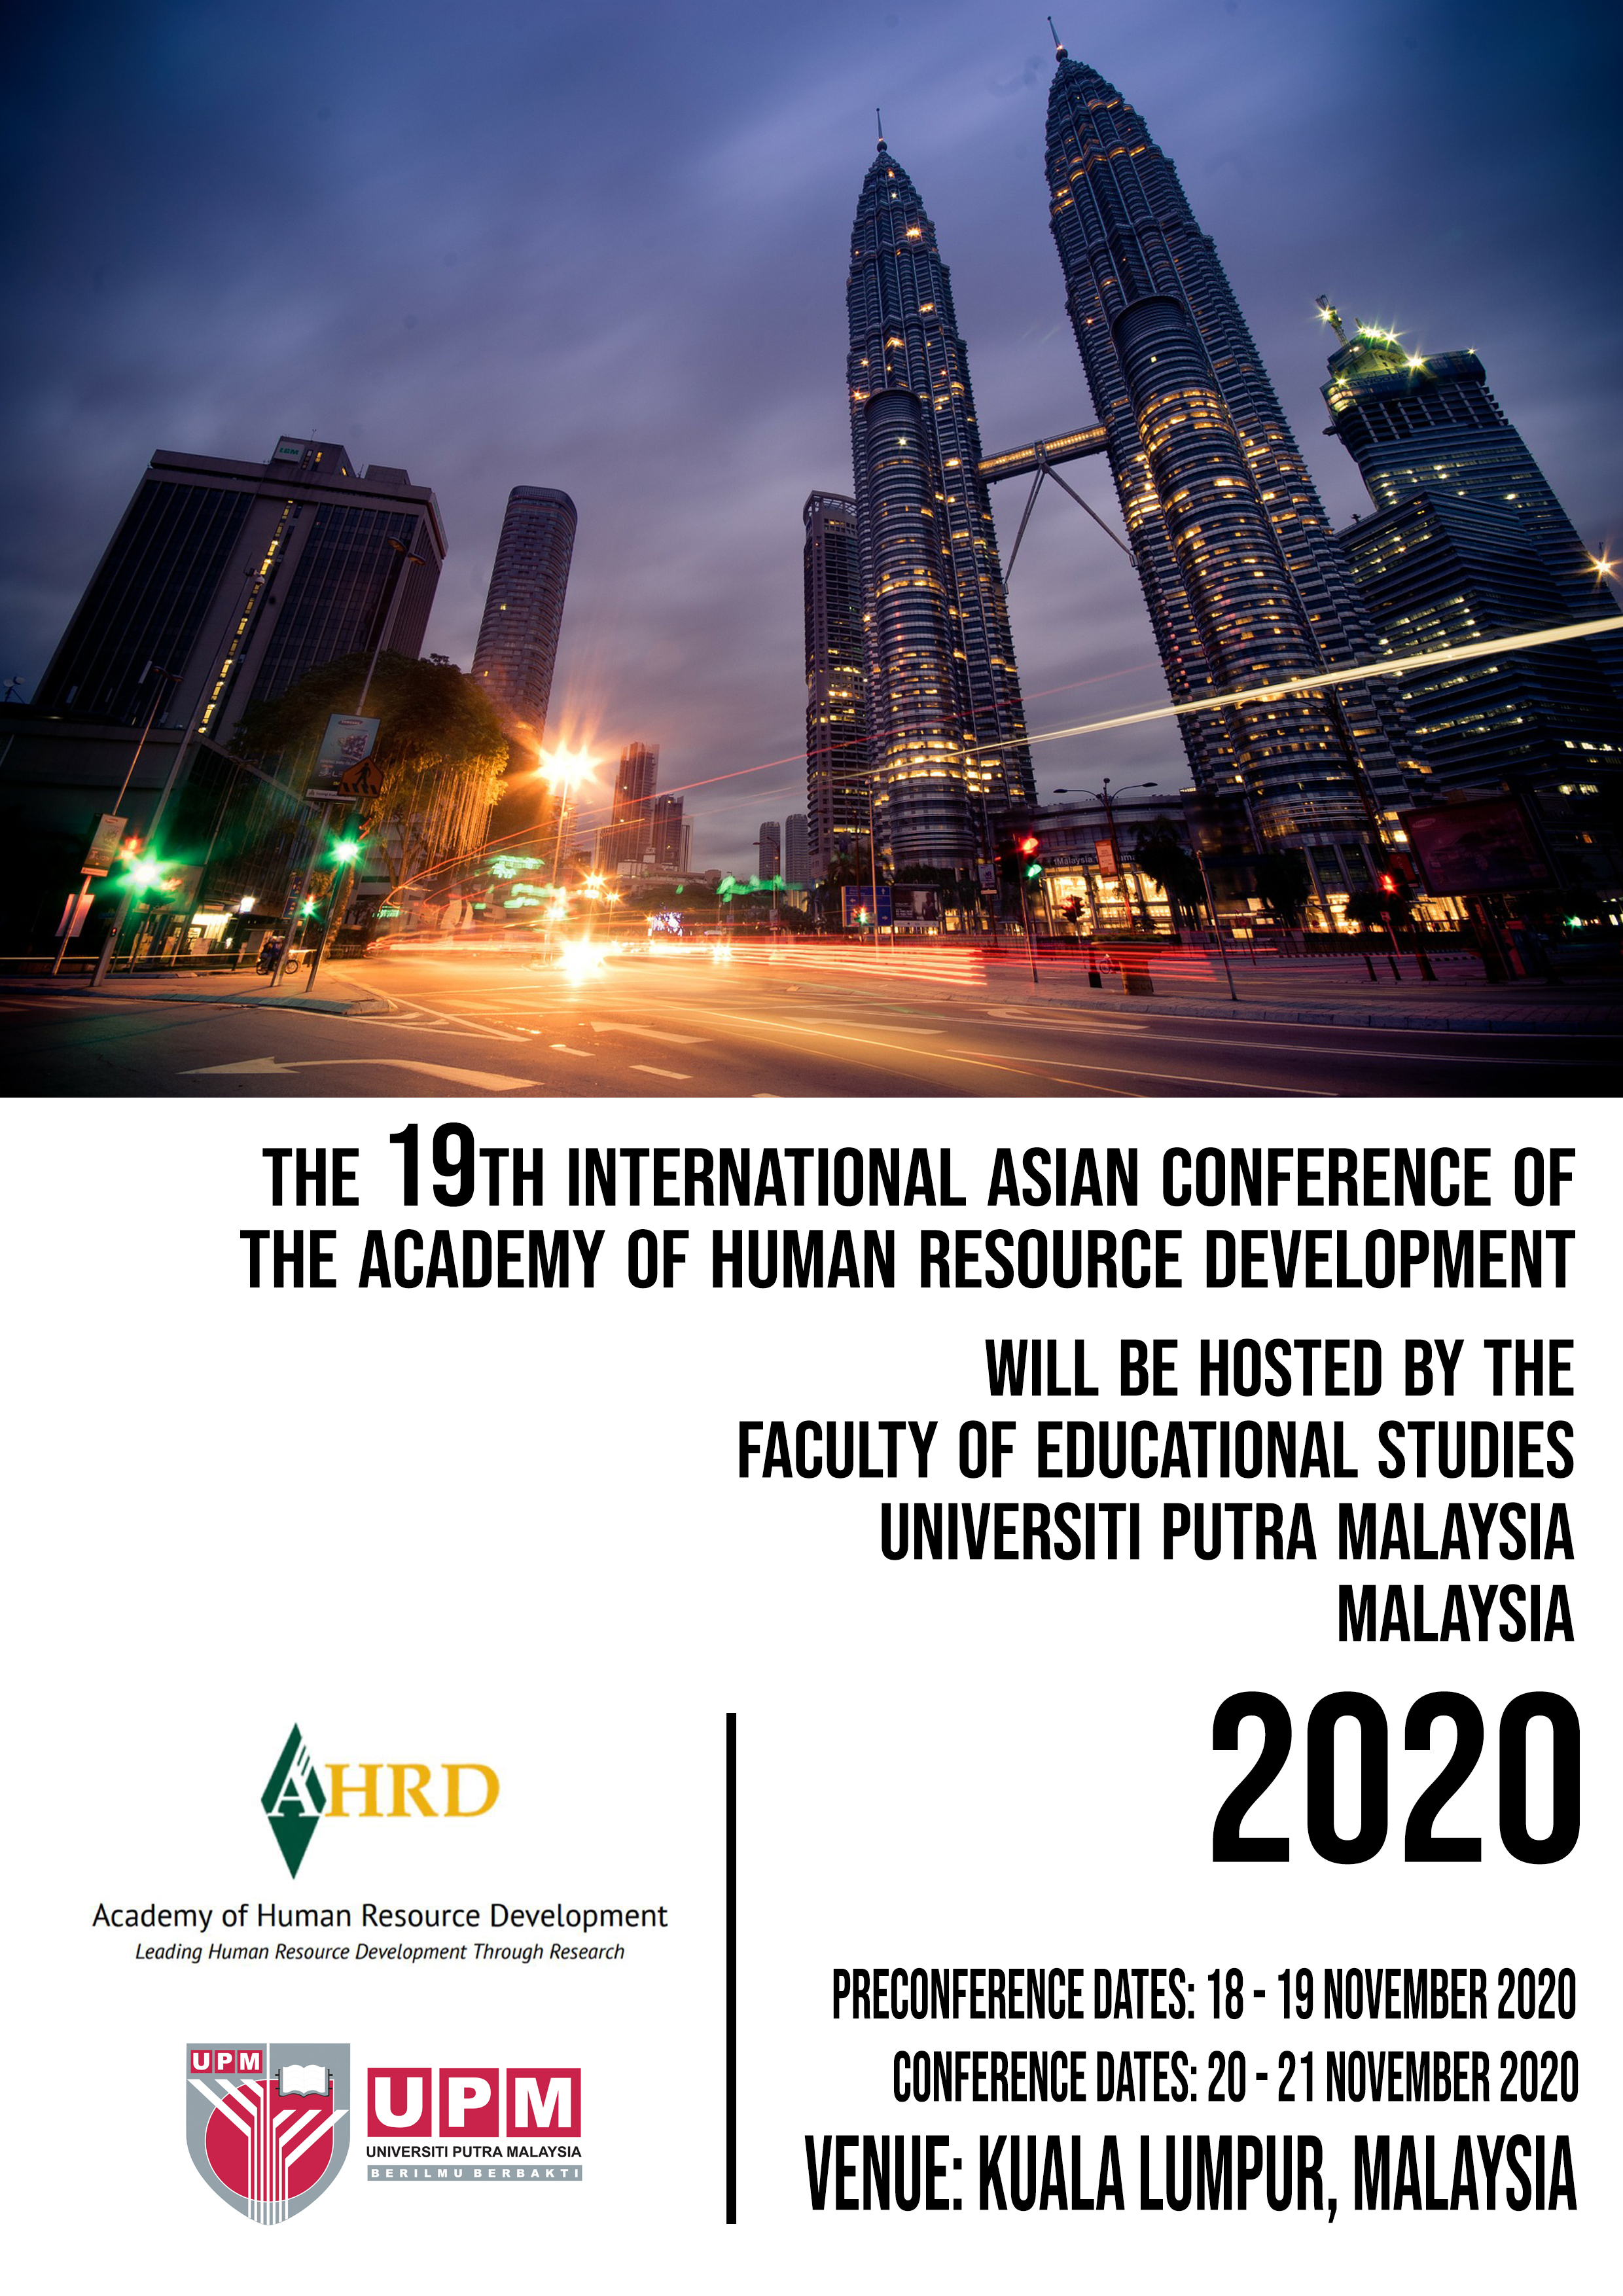 The 19th International Asian Conference of the Academy of Human Resources Development